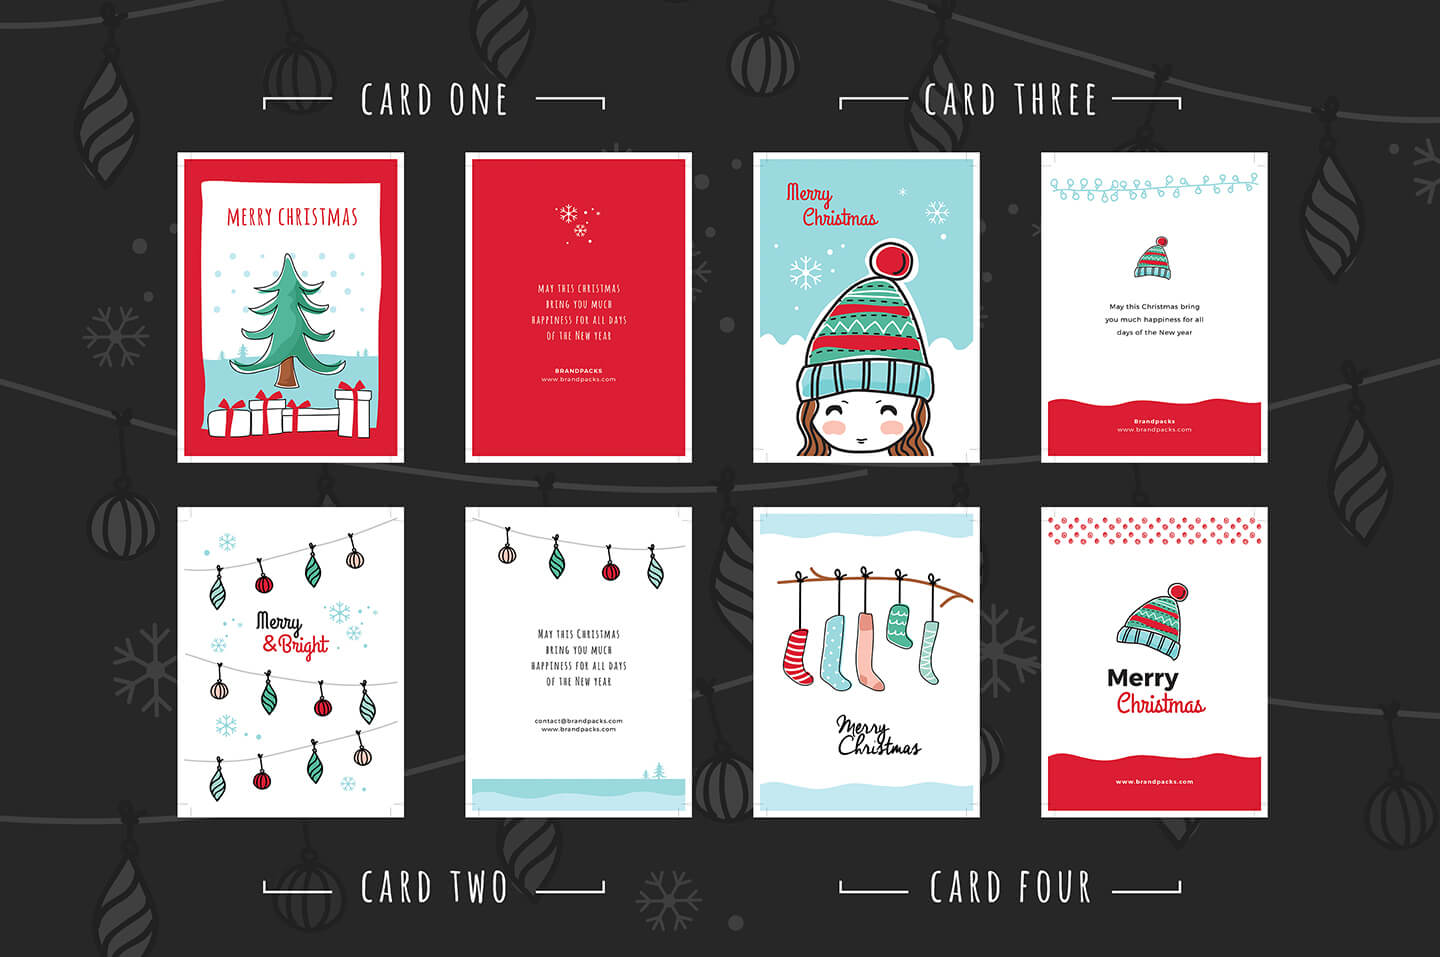 Free Christmas Card Templates For Photoshop & Illustrator Regarding Free Christmas Card Templates For Photoshop